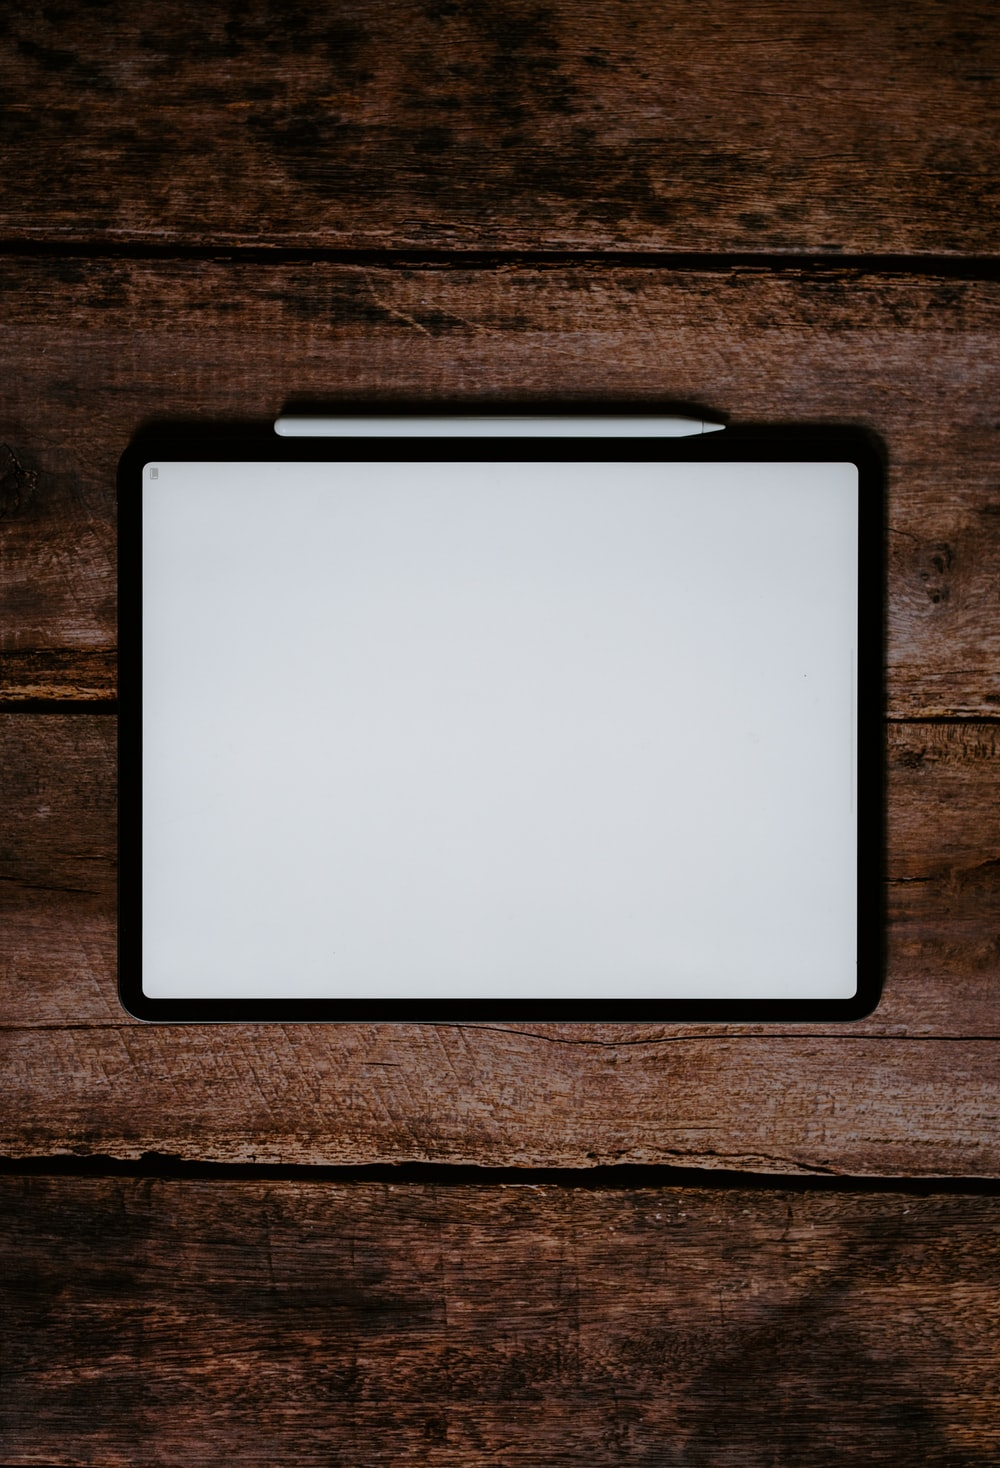 white and black tablet computer on brown wooden table